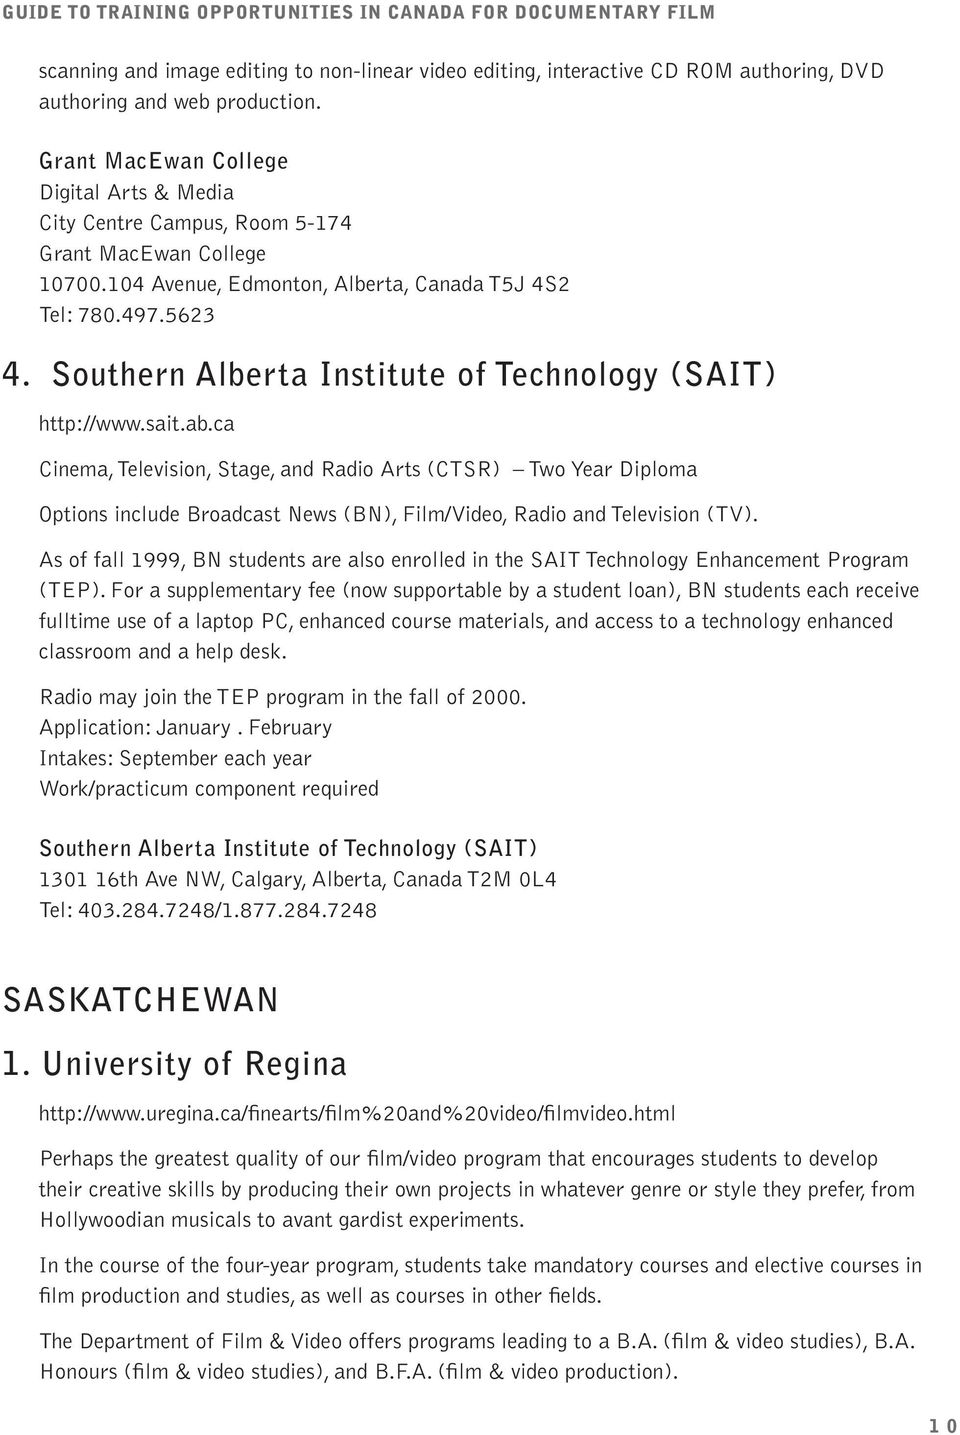 Southern Alberta Institute of Technology (SAIT) http://www.sait.ab.